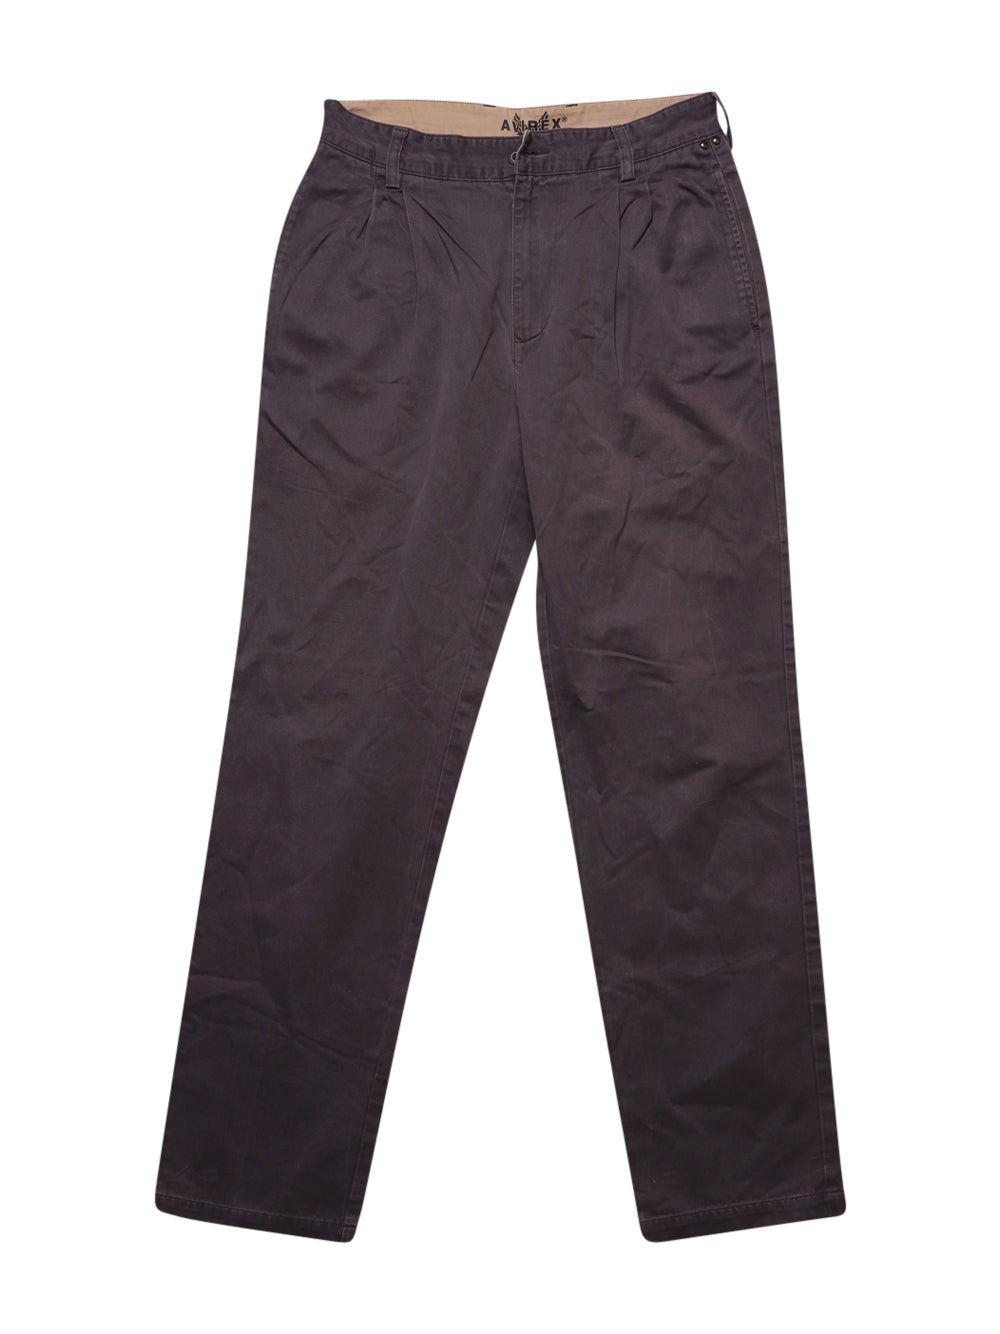 Front photo of Preloved Avirex Grey Man's trousers - size 34/XS